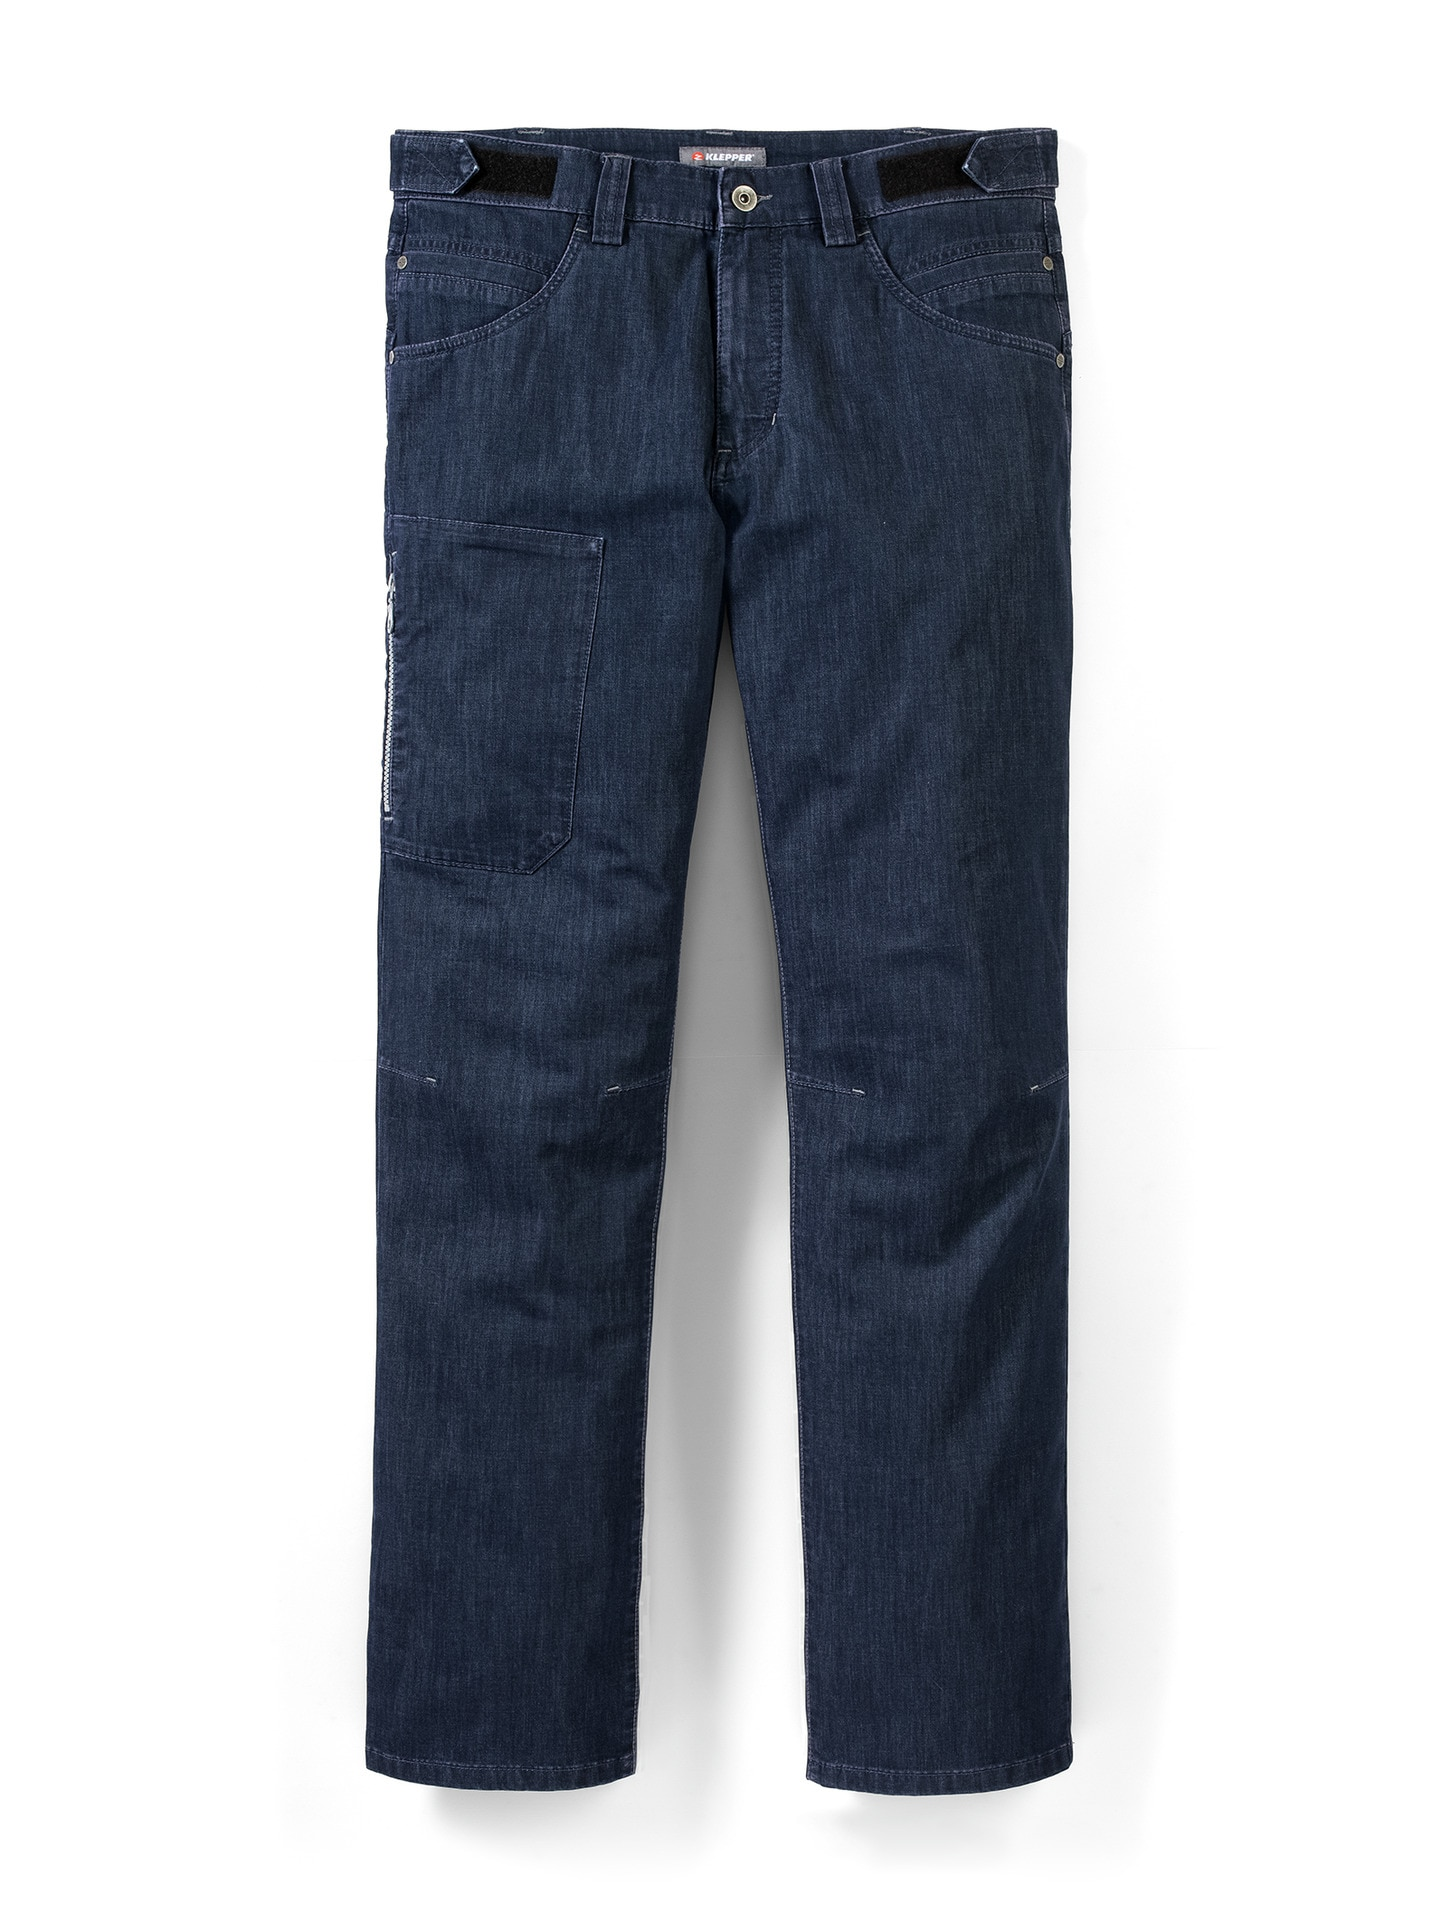 Image of Klepper Coolmax Jeans